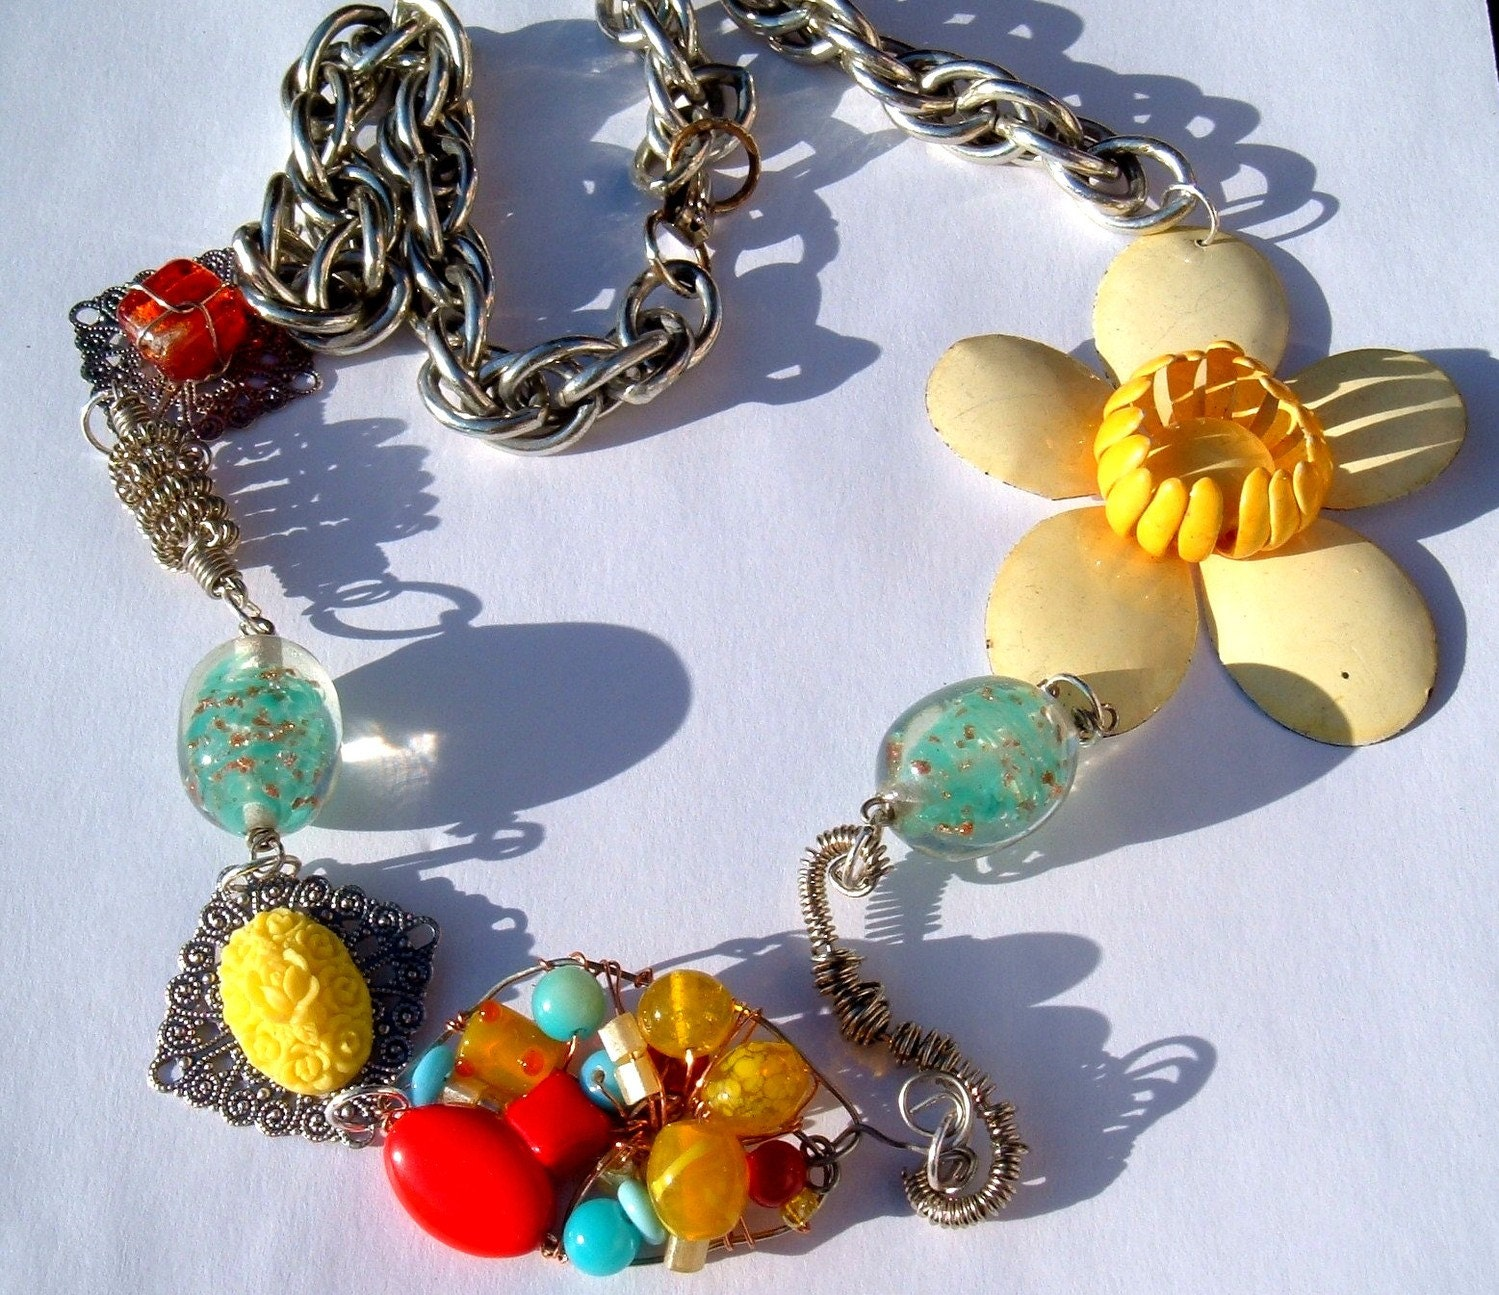 Cornfusion Sunshine unrowed  reclaimed recycled ooak necklace